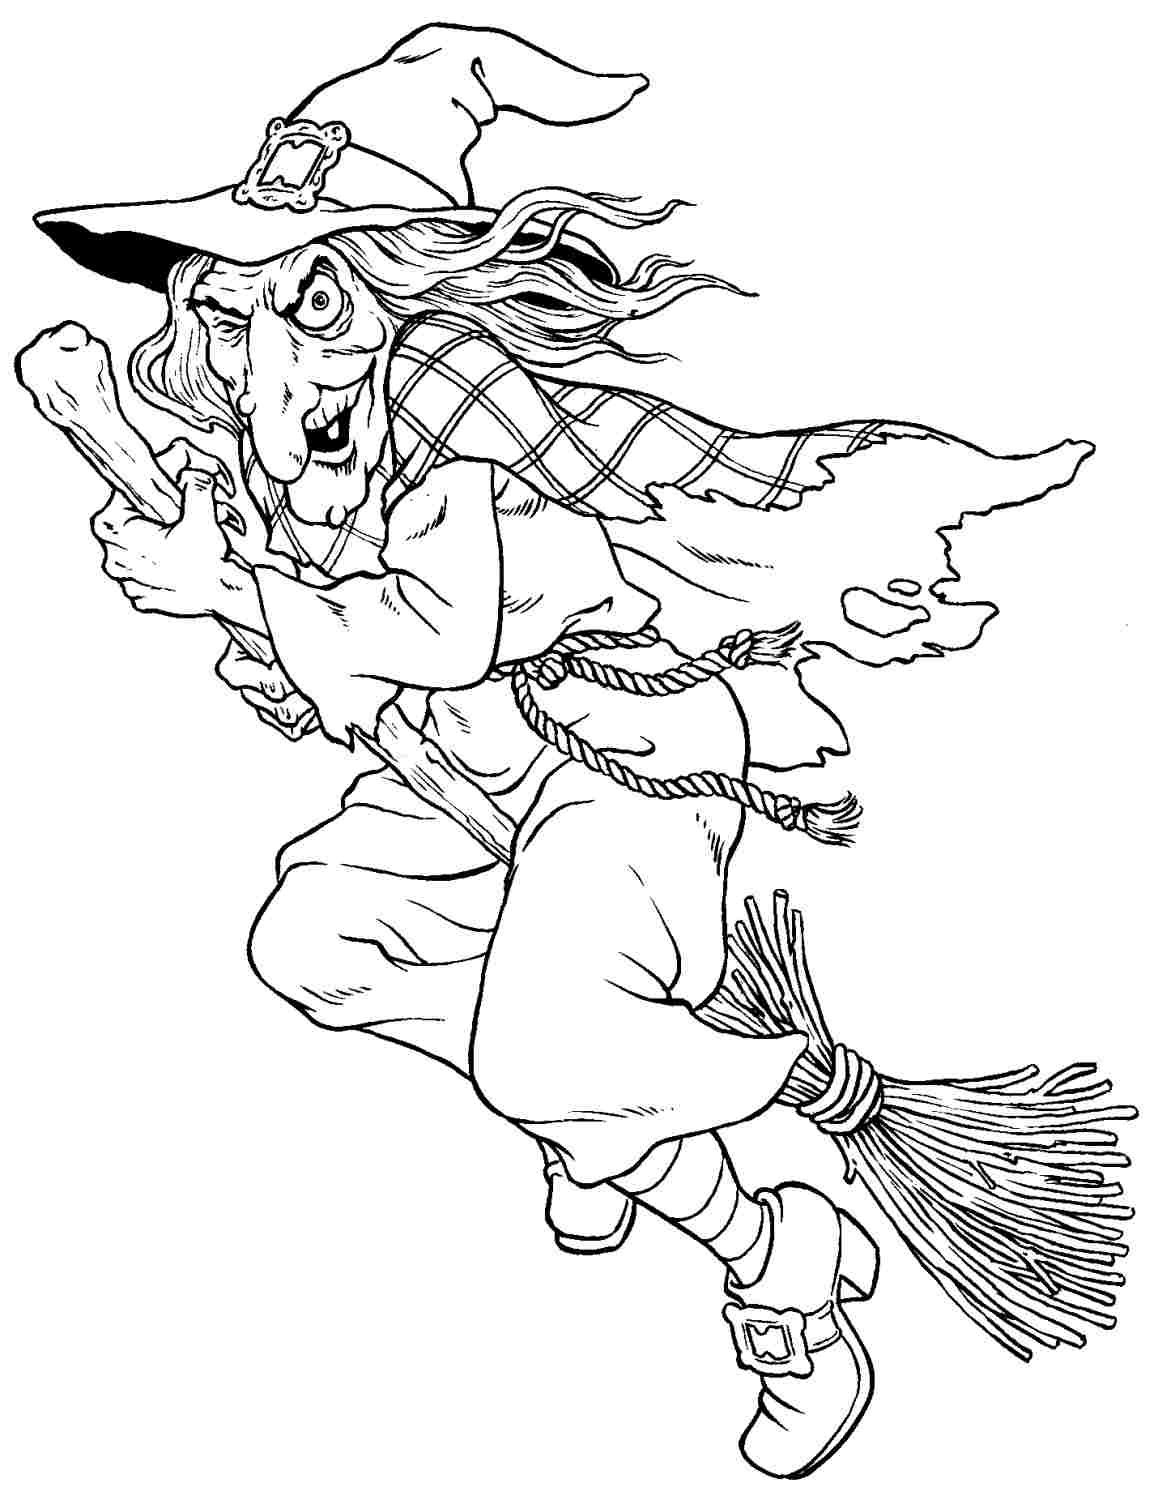 witches colouring pages Free Halloween Witch Colouring